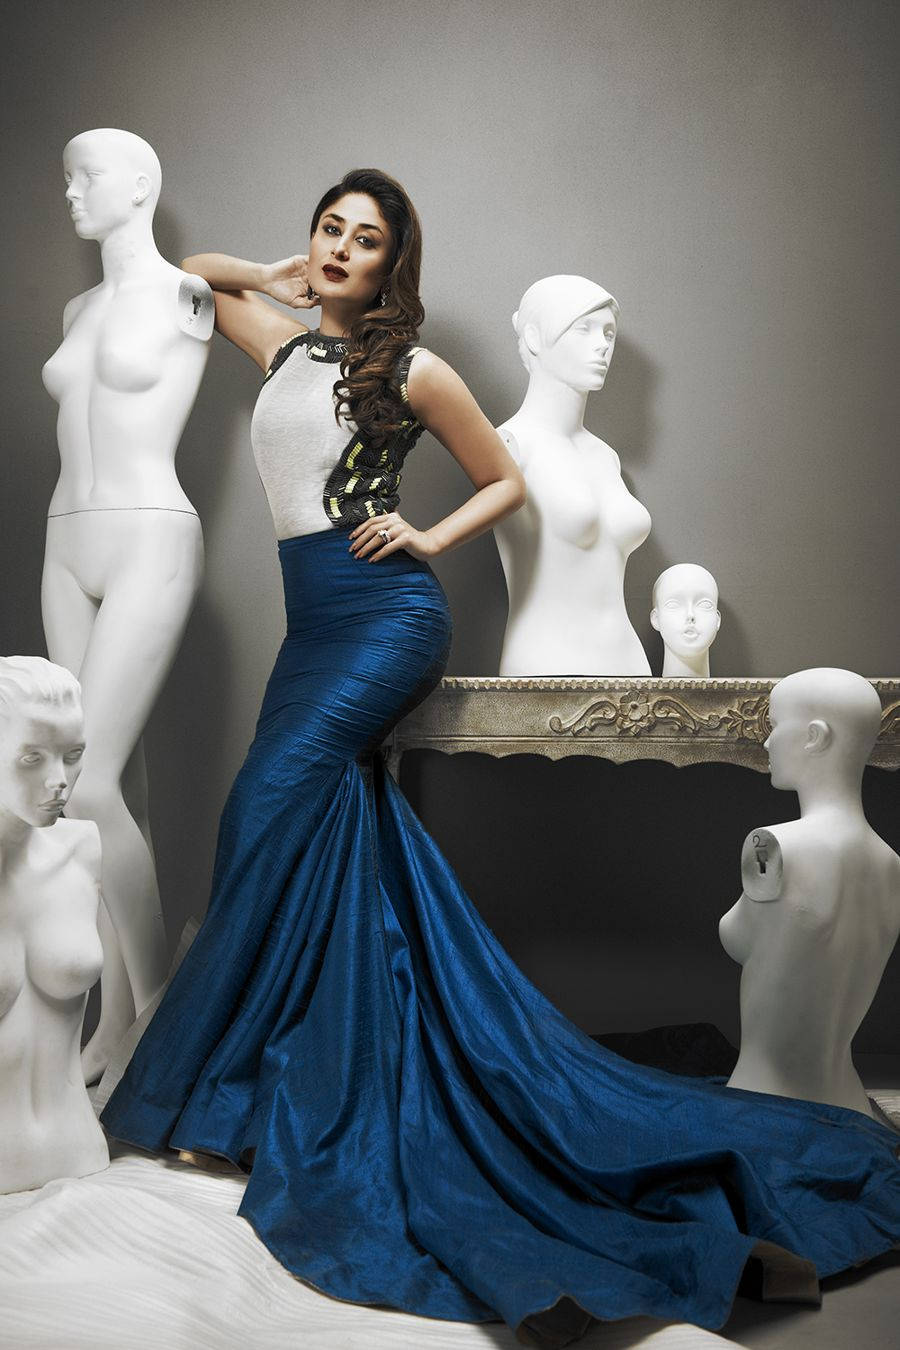 Kareena Kapoor is Royal in her Photoshoot